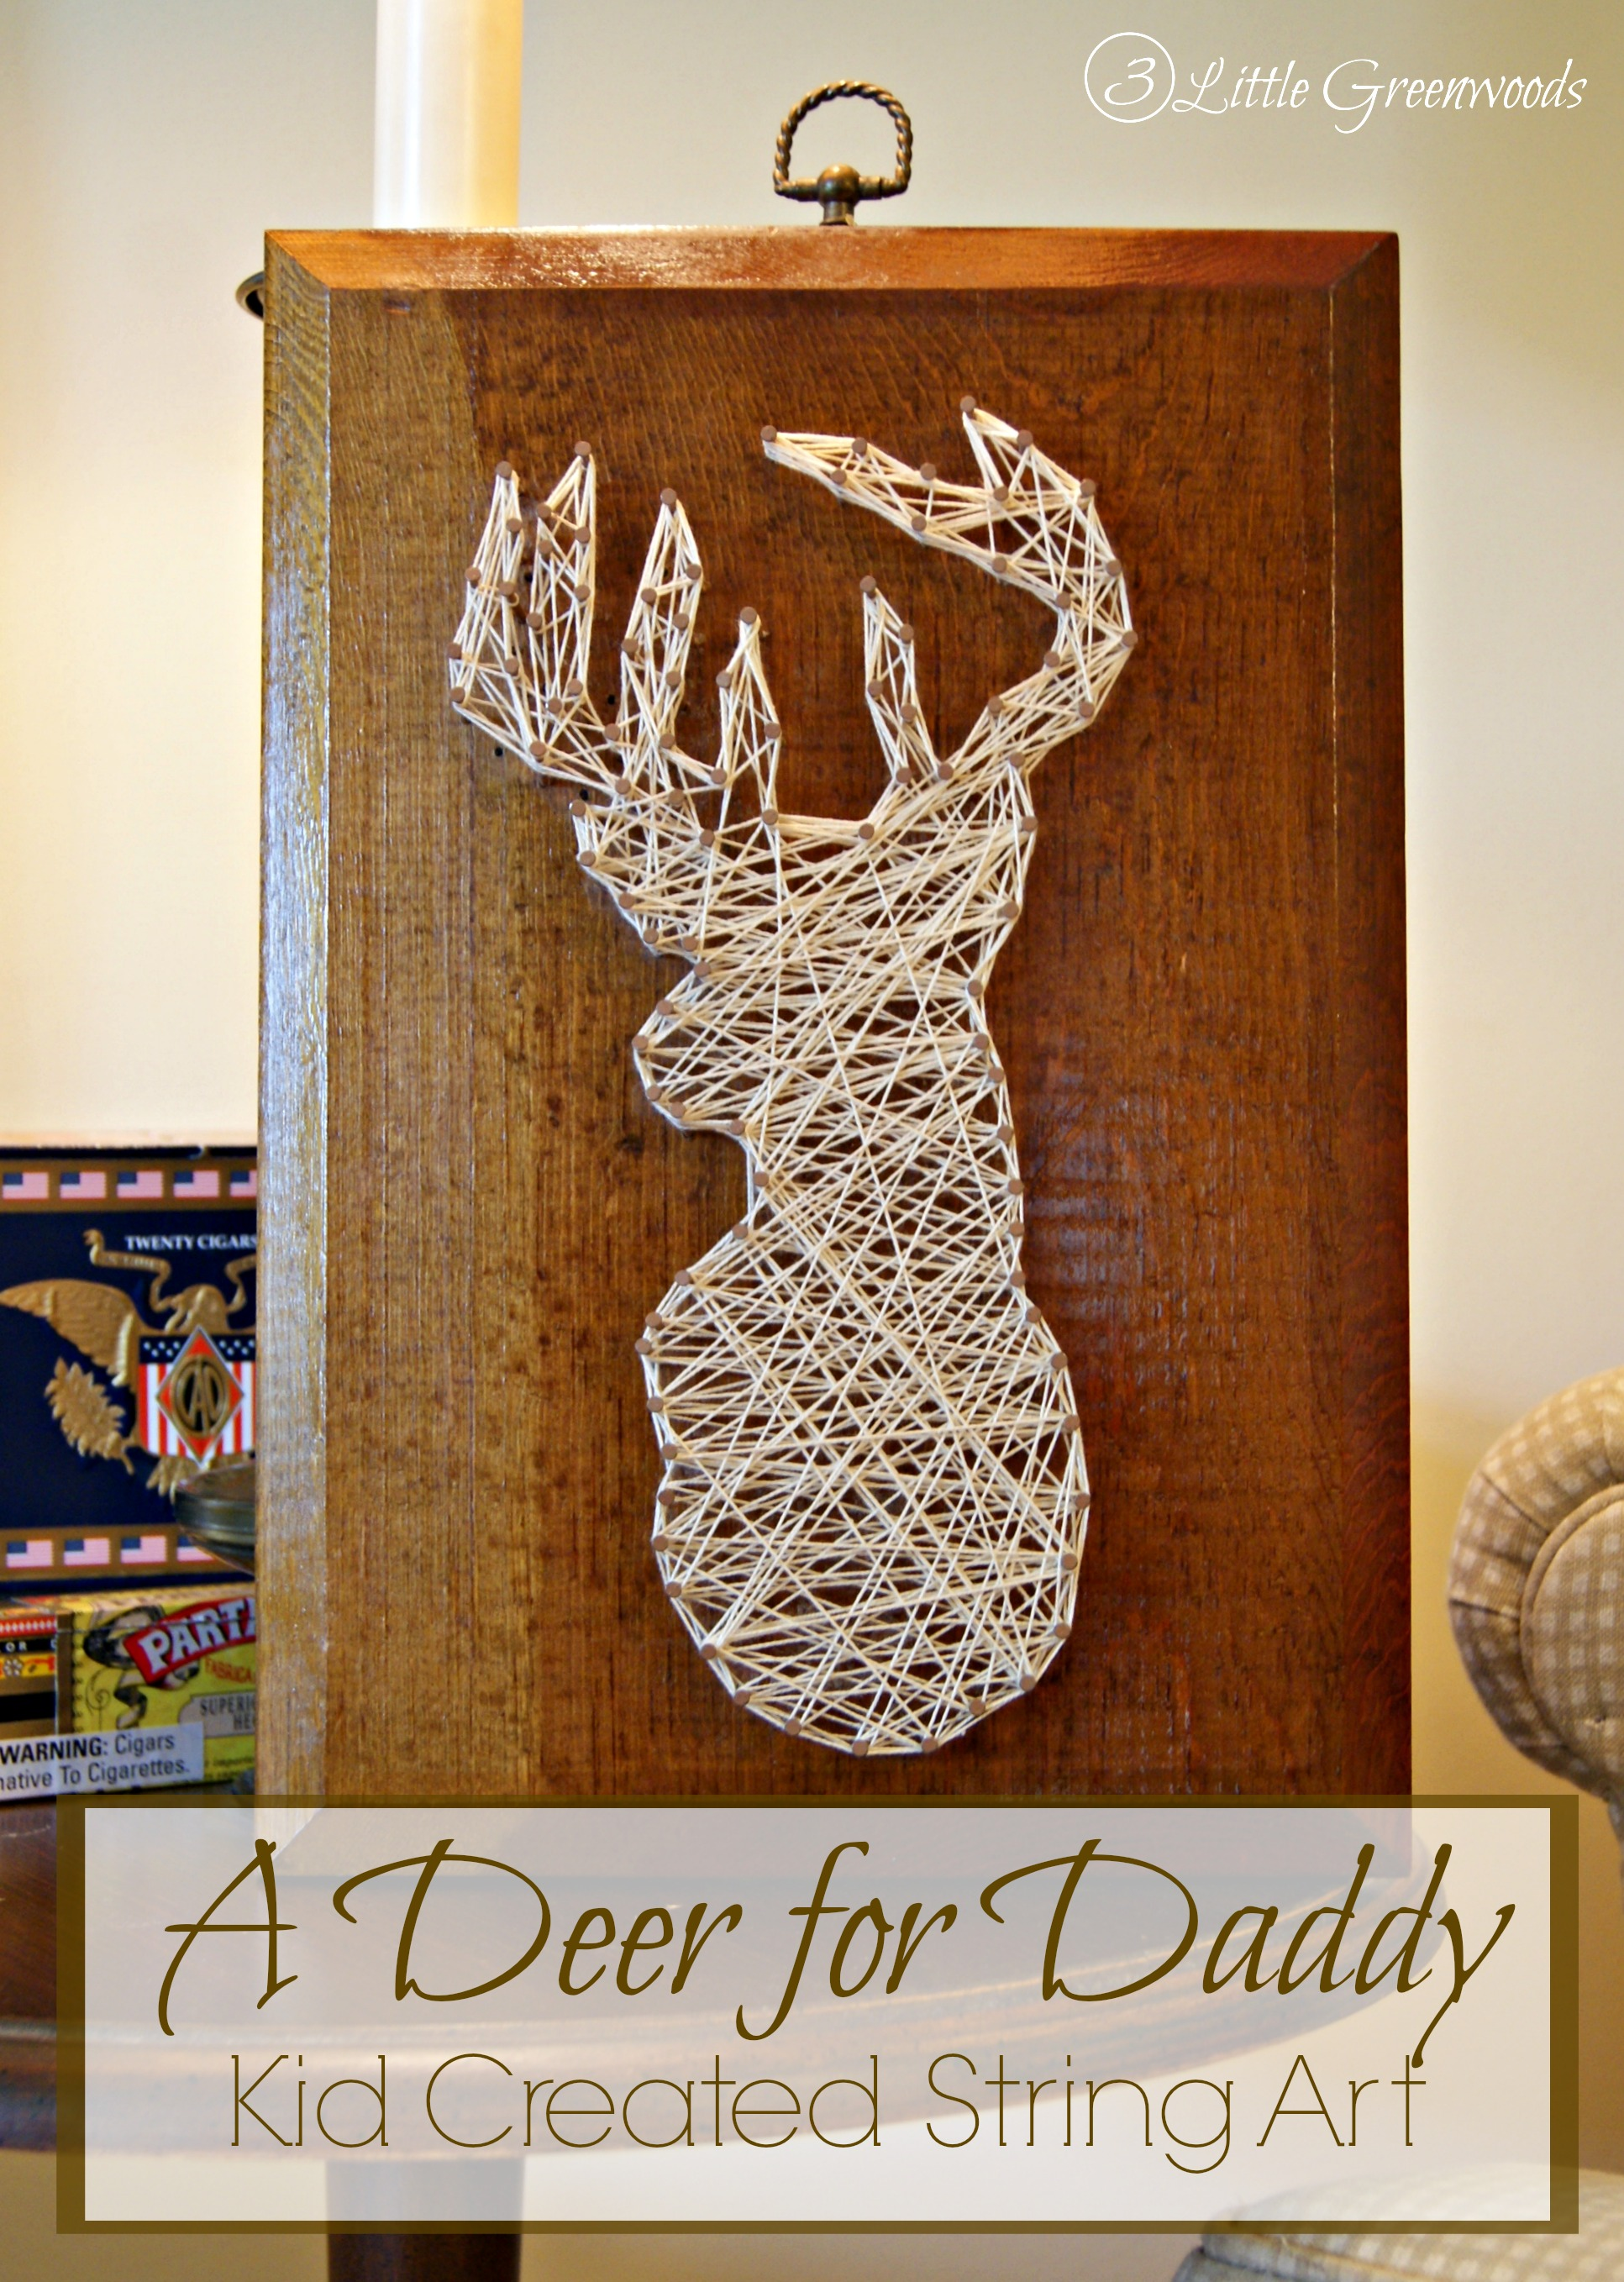 A Deer for Daddy ~ Kid Created String Art by 3 Little Greenwoods